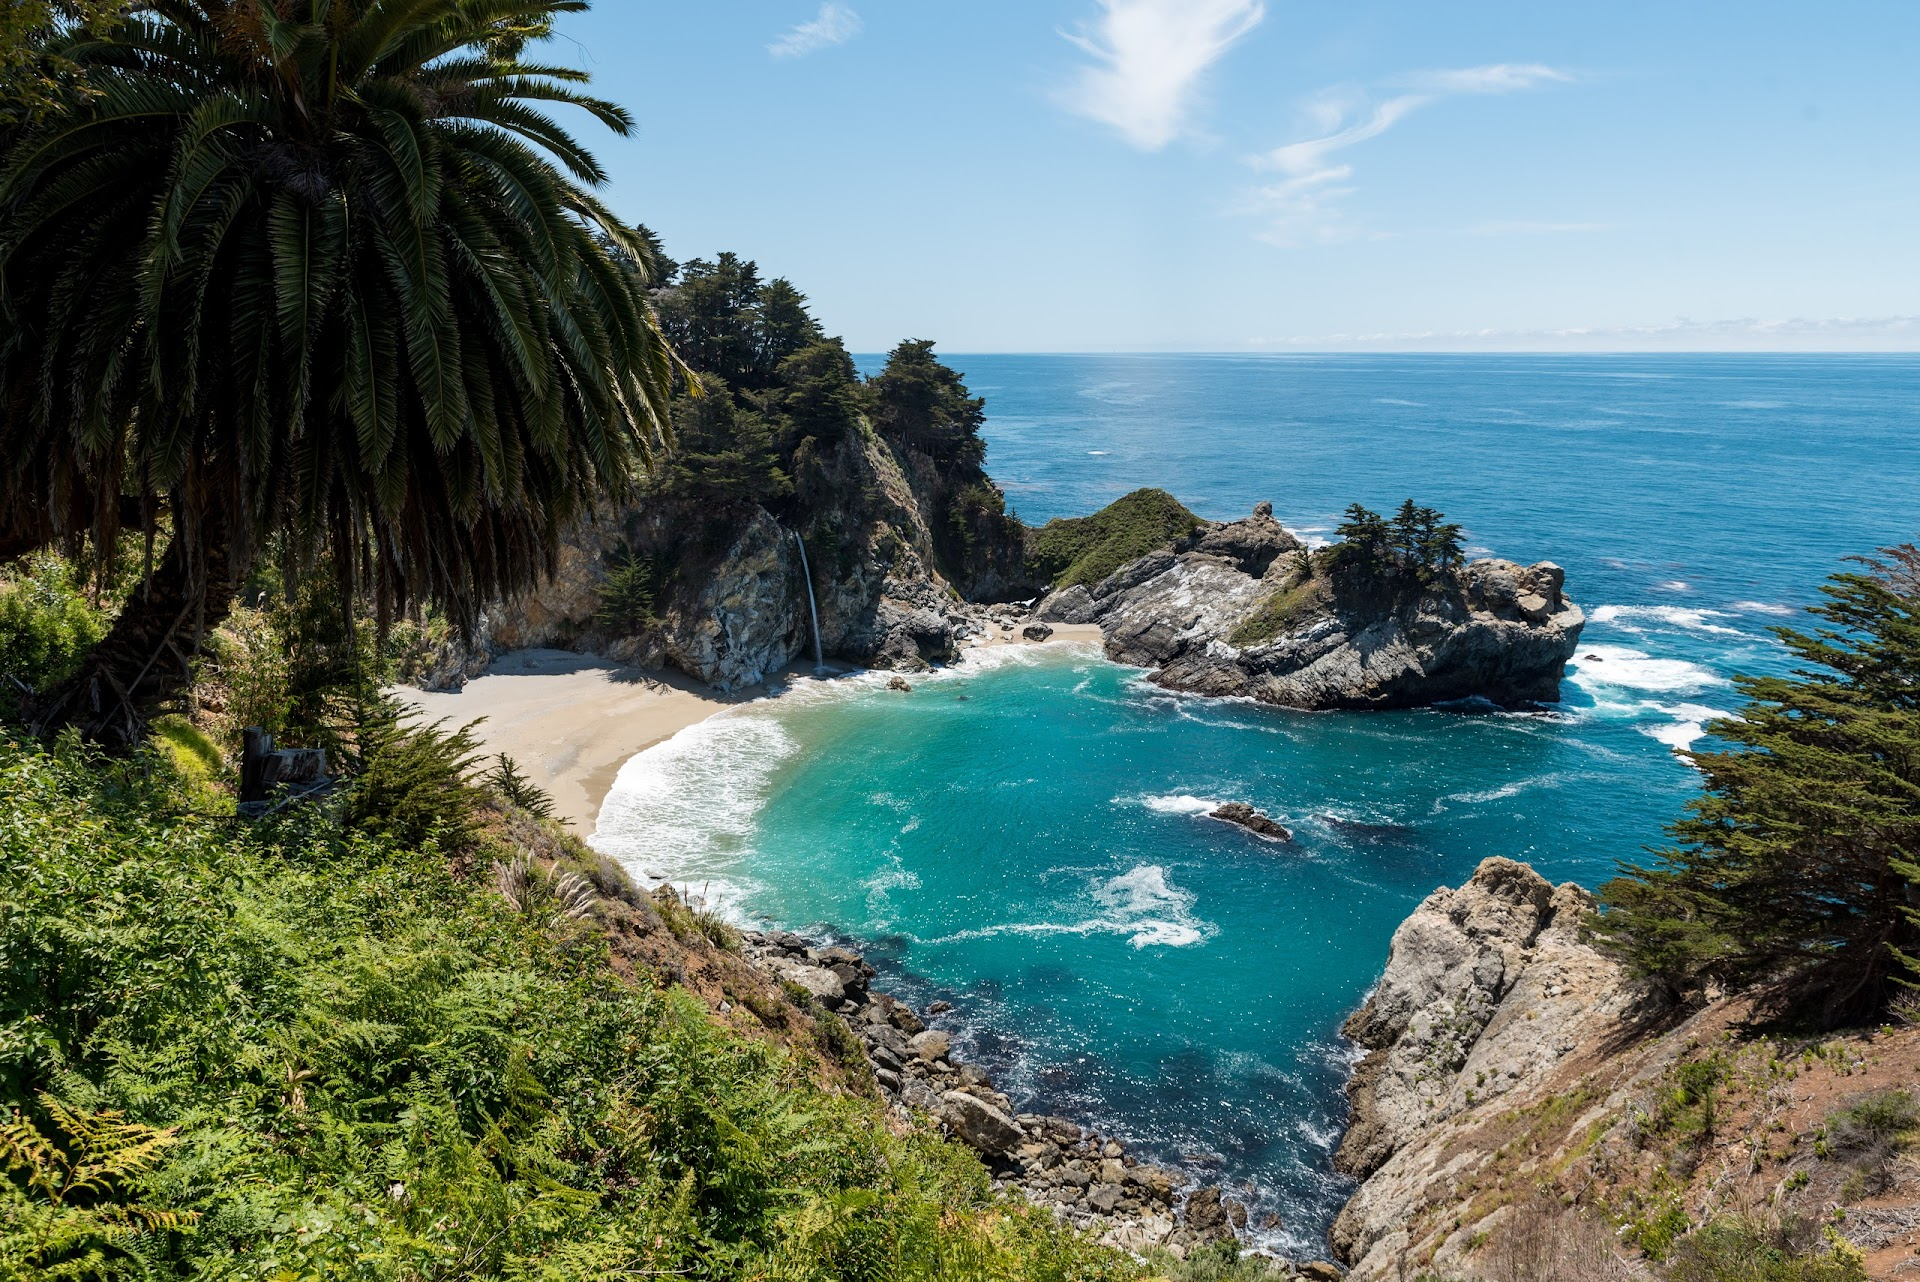 what to do in big sur, travel blogger, mcway falls, central coast, monterey, san francisco bay area blogger, usa road trip ideas, california coast